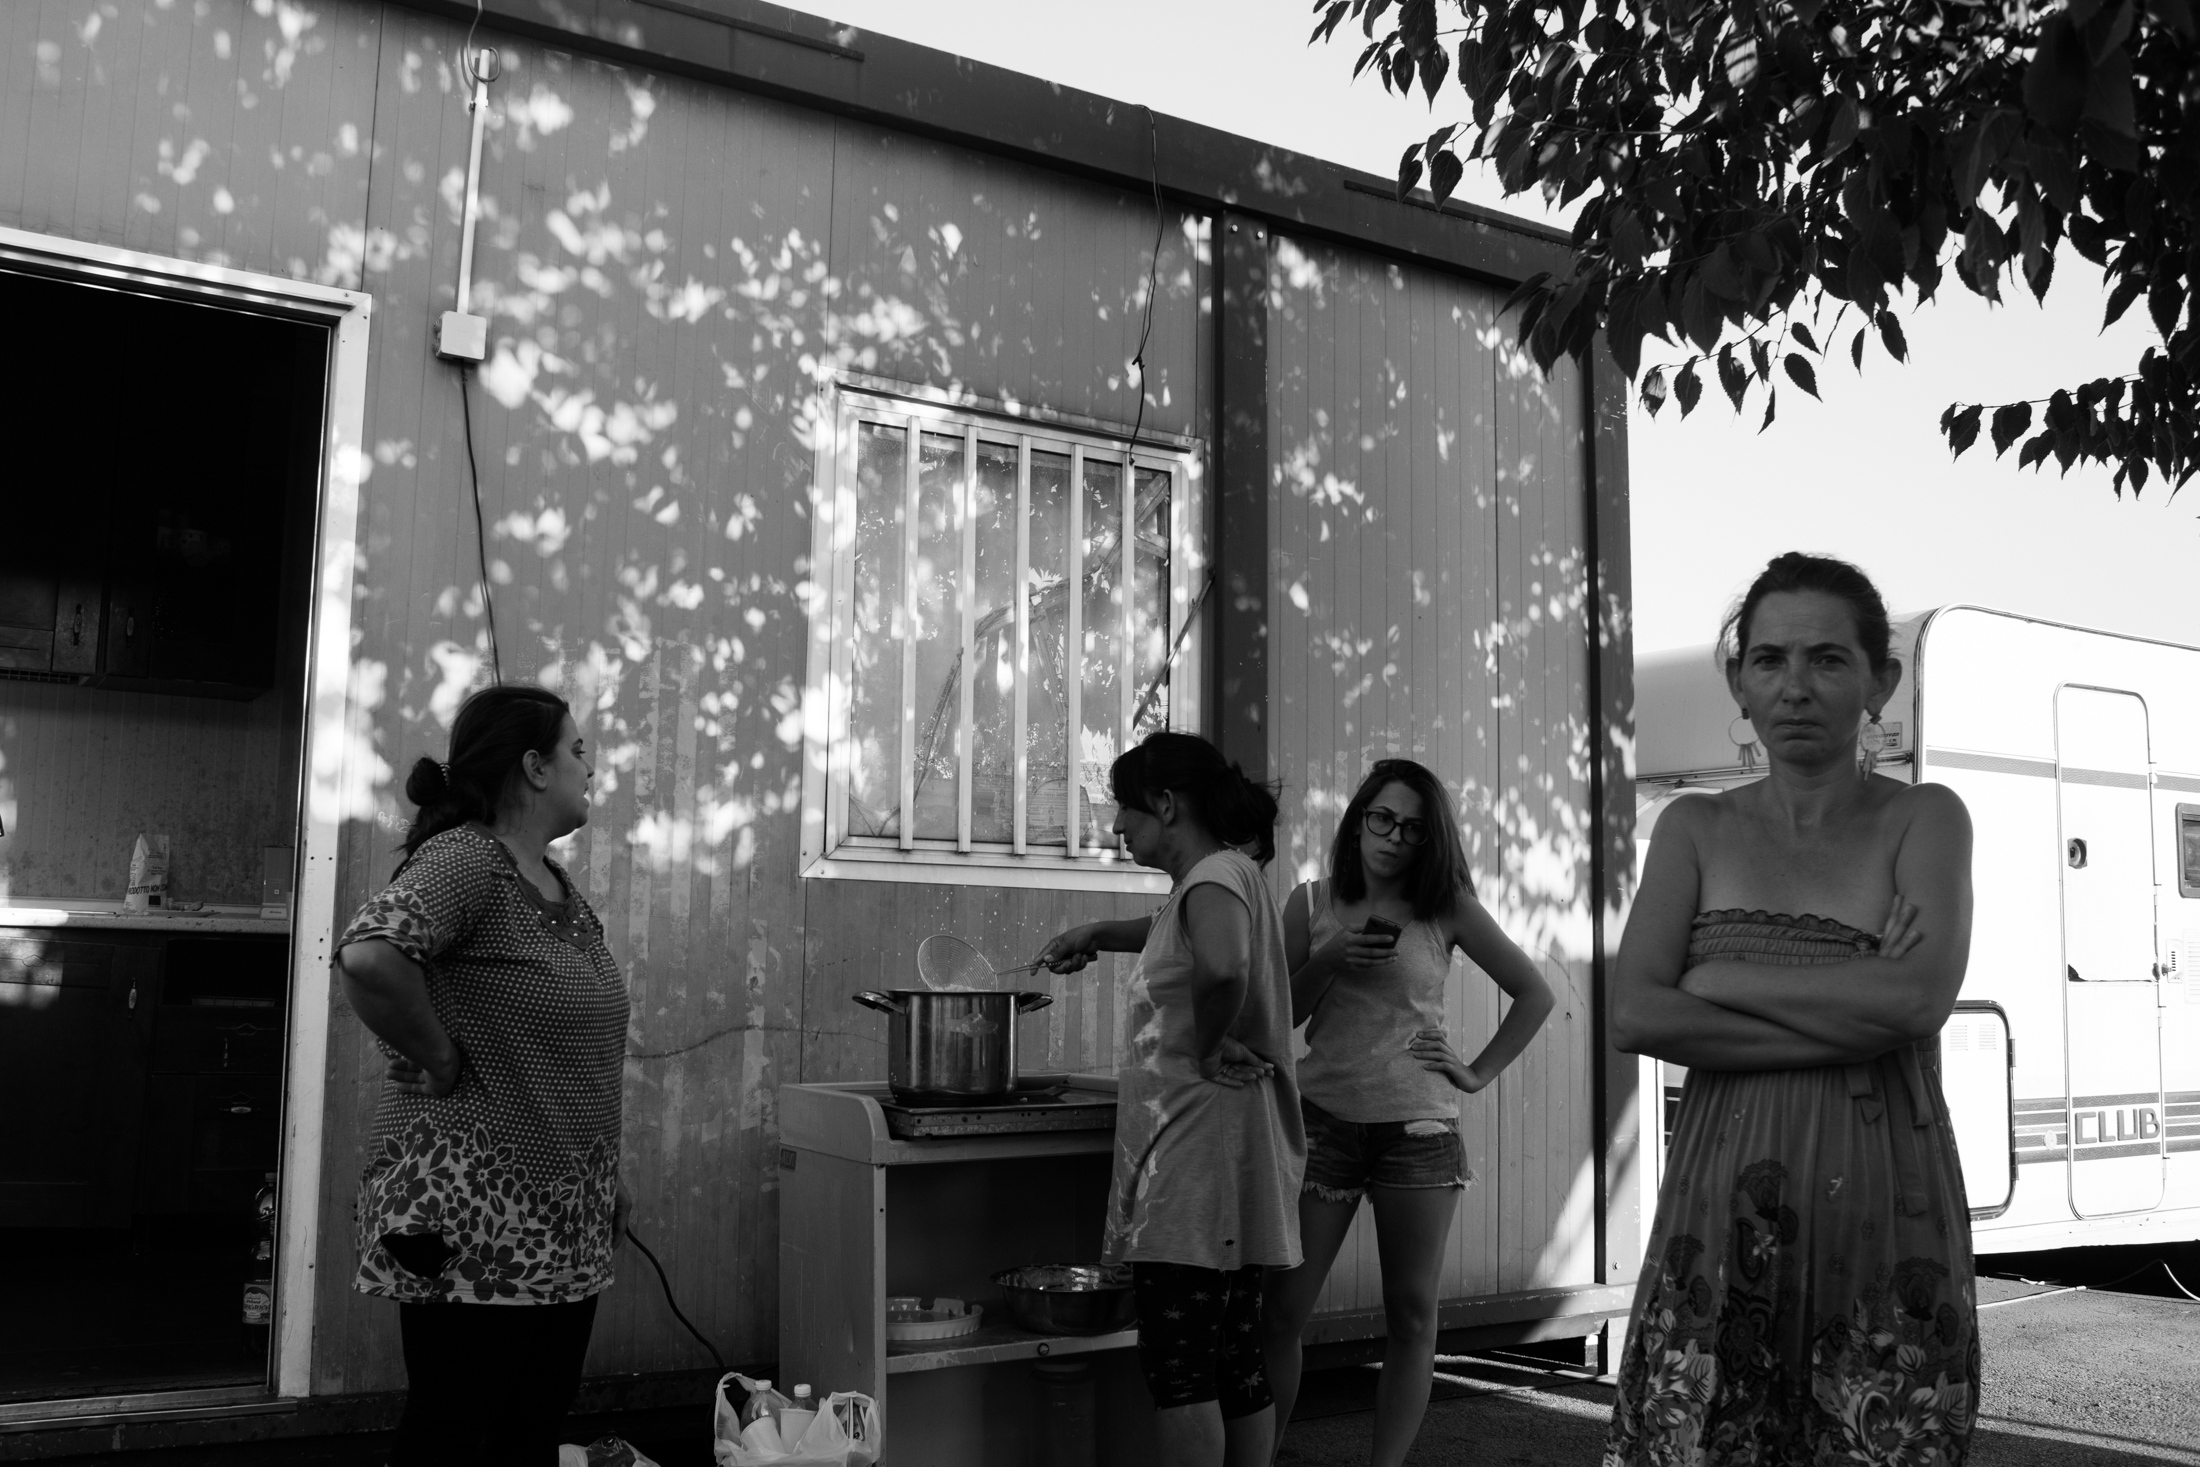 August 2017, nomad camp of Castelnuovo Rangone, Emilia-Romagna, Italy. Linda cooks for her family and her sister's.